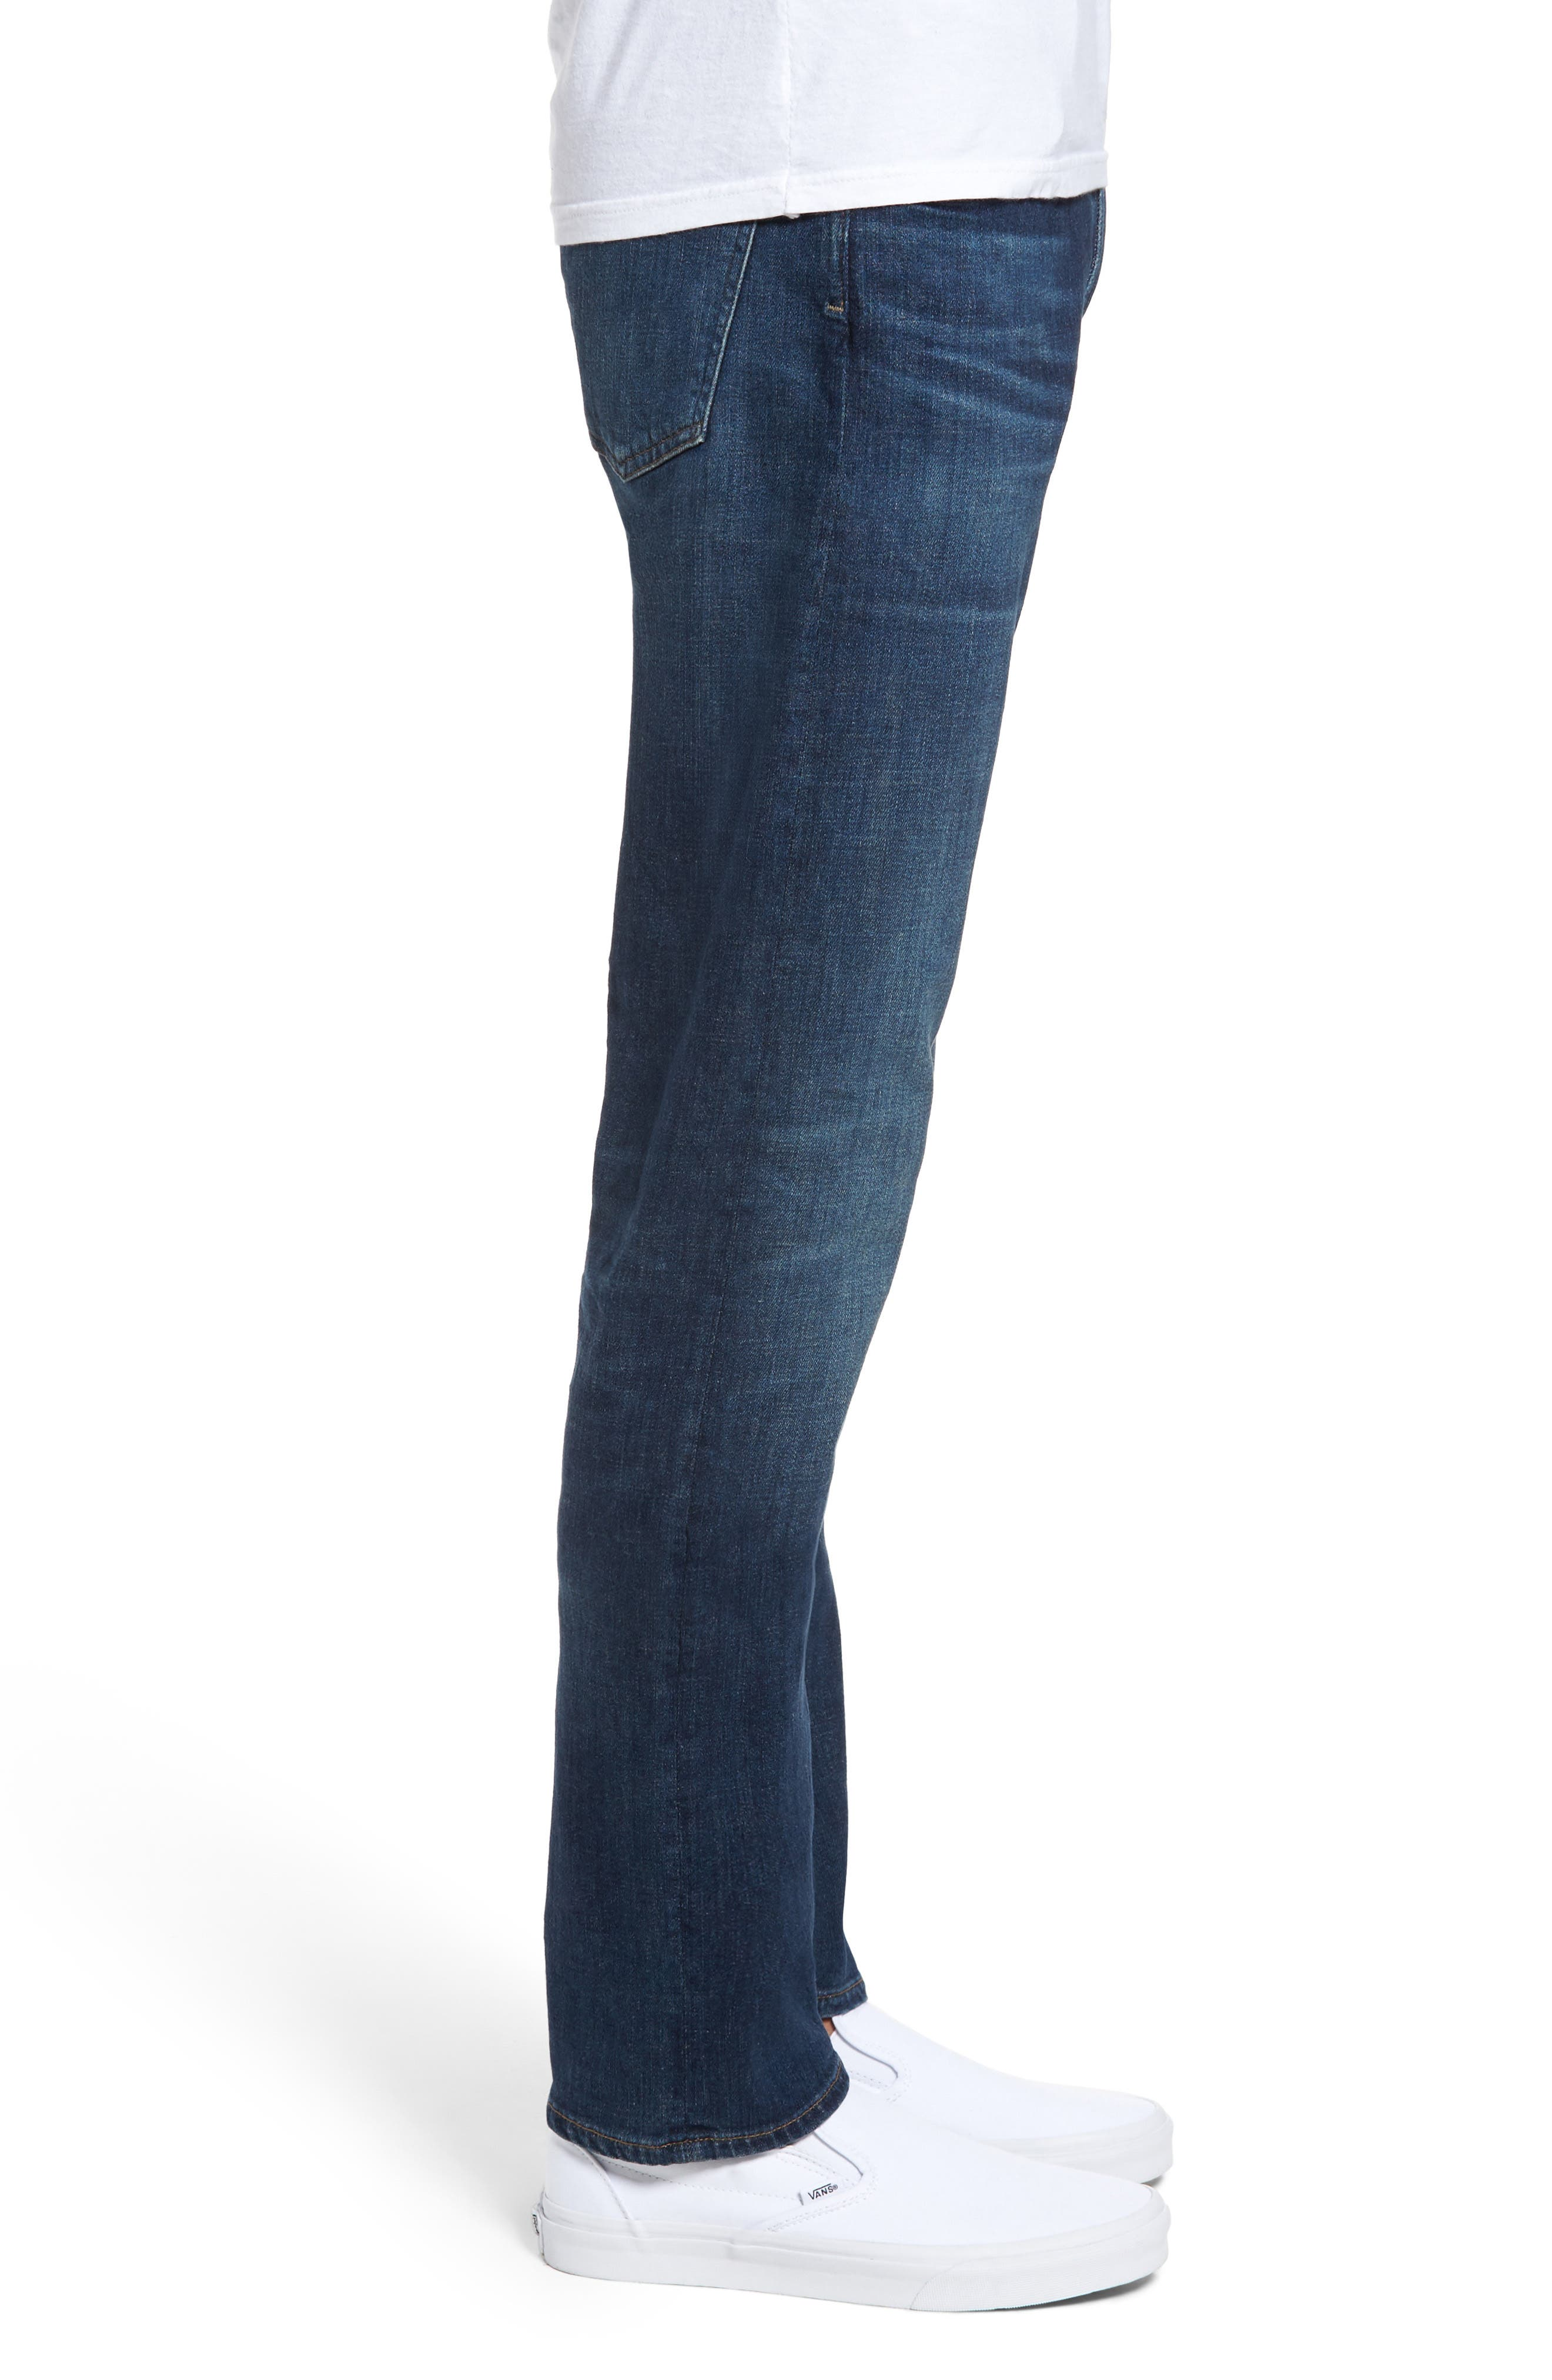 Bowery Slim Fit Jeans,                             Alternate thumbnail 3, color,                             401